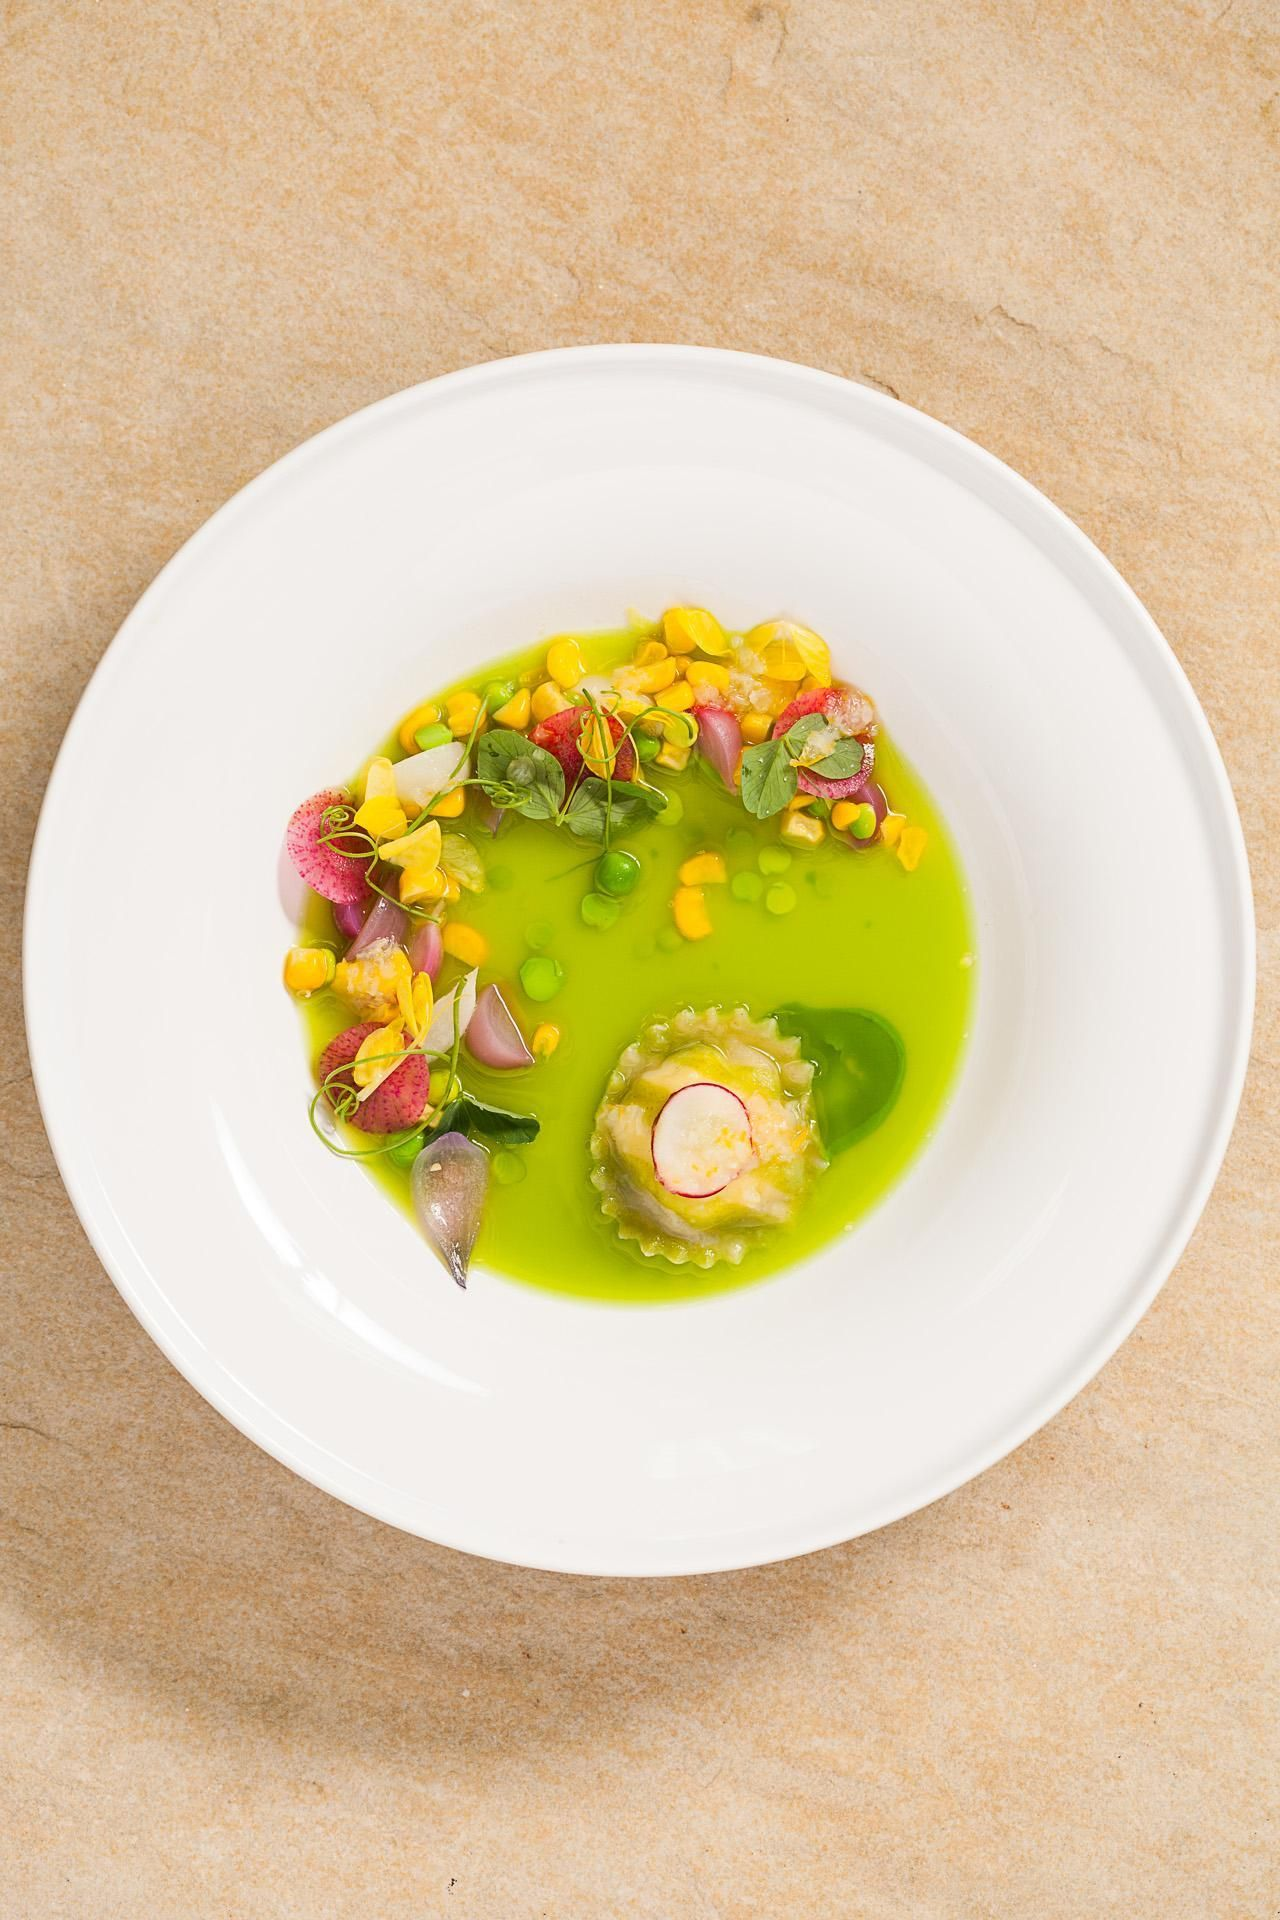 When one famous chef fêtes another, you know something special is in store. Here are all the gorgeous dishes, with notes from a top toque on each, from a recent lunch at Modernist Cuisine HQ, which Italian superstar chef Massimo Bottura attended.